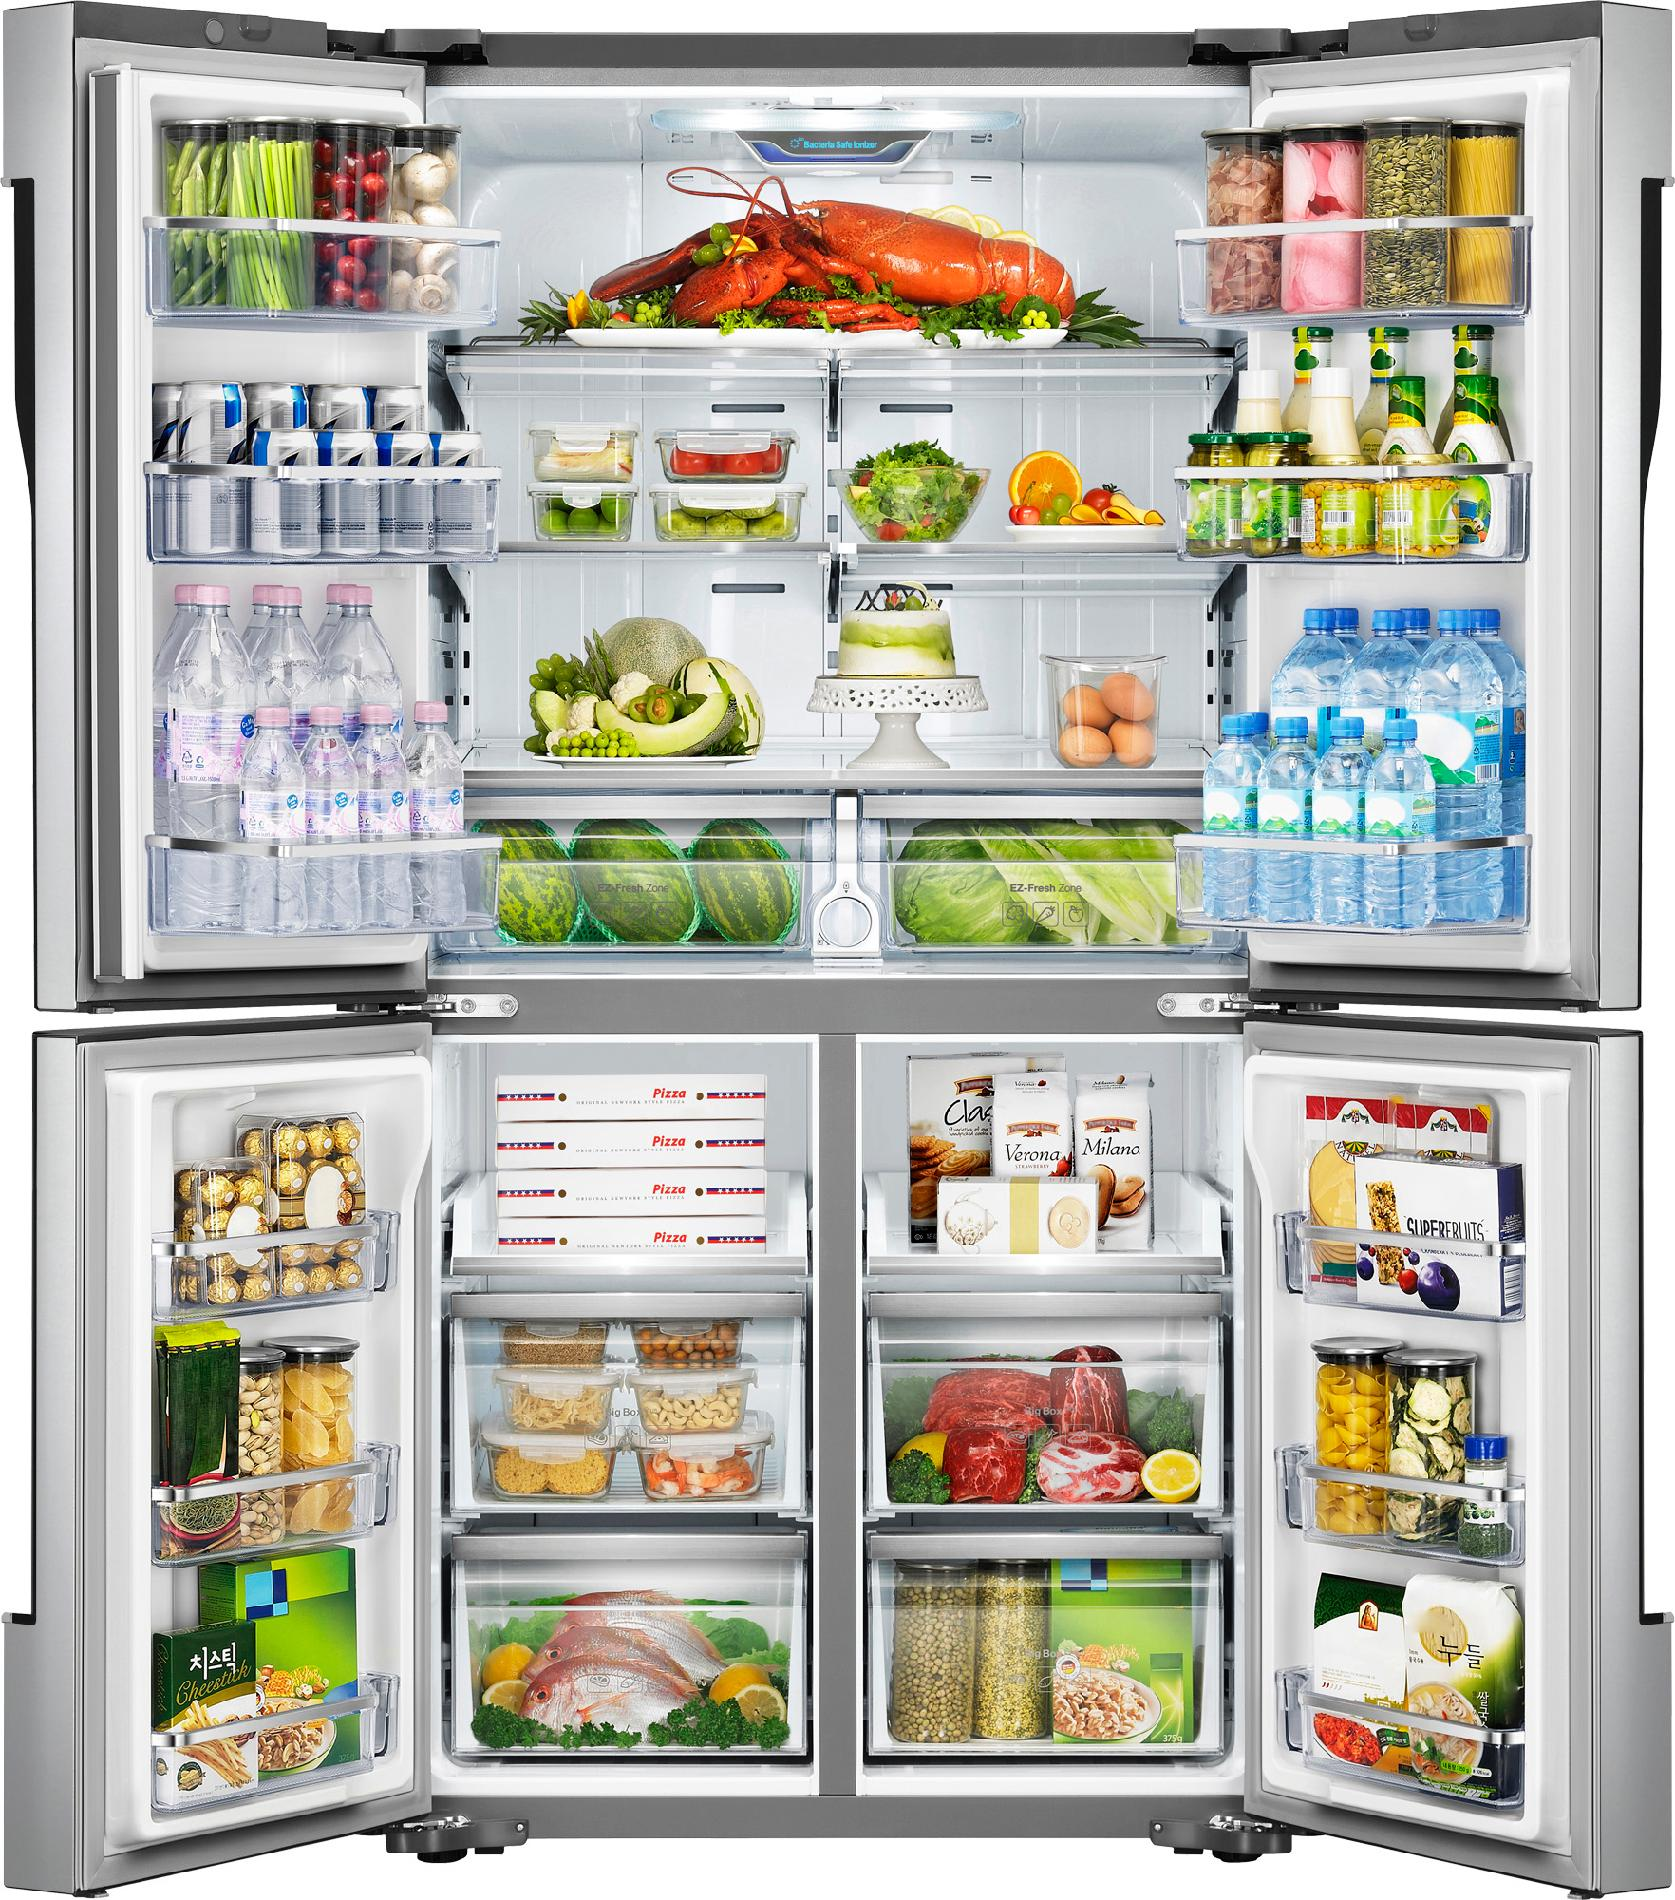 Samsung RF32FMQDBSR 31.7 cu. ft. 4-Door Flex™ Refrigerator - Stainless Steel